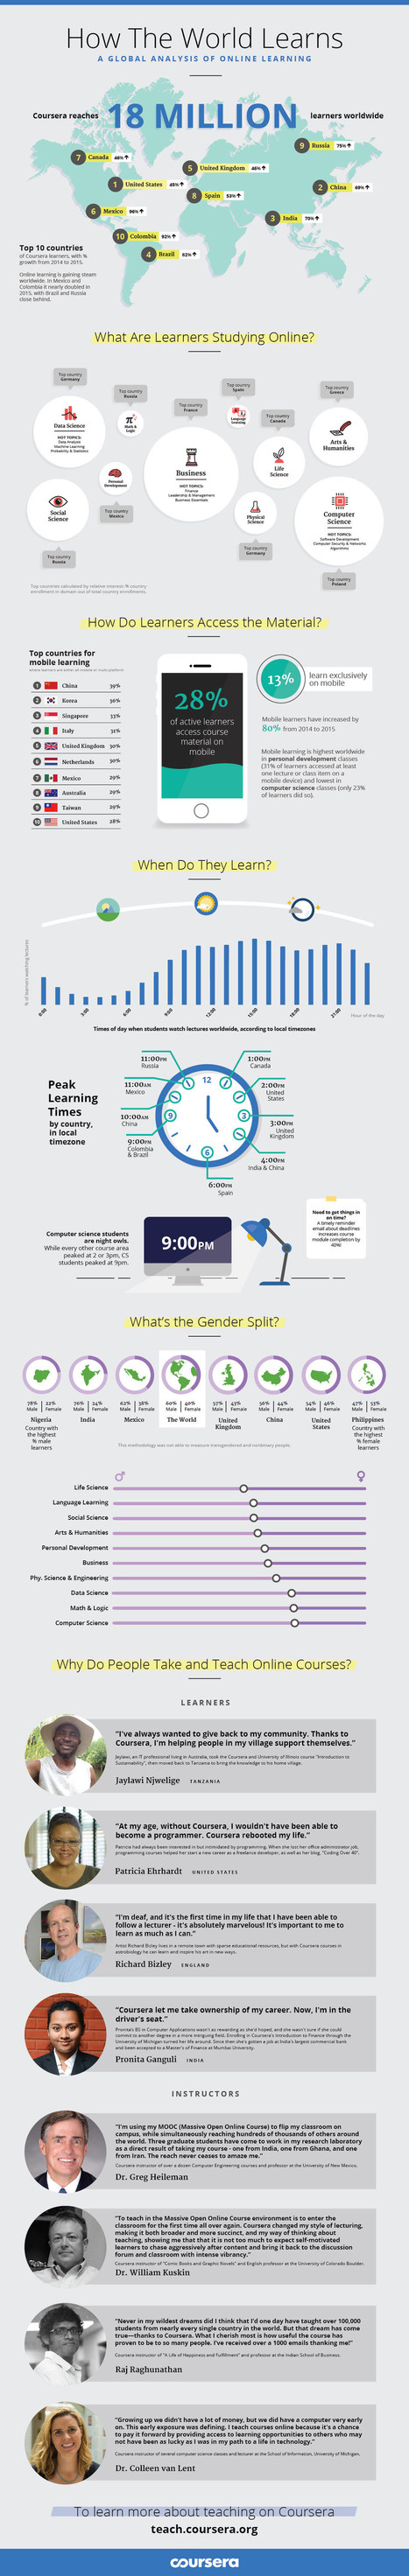 Infographie : How the World Learns, by Coursera | Sciences du numérique et e-education | Scoop.it